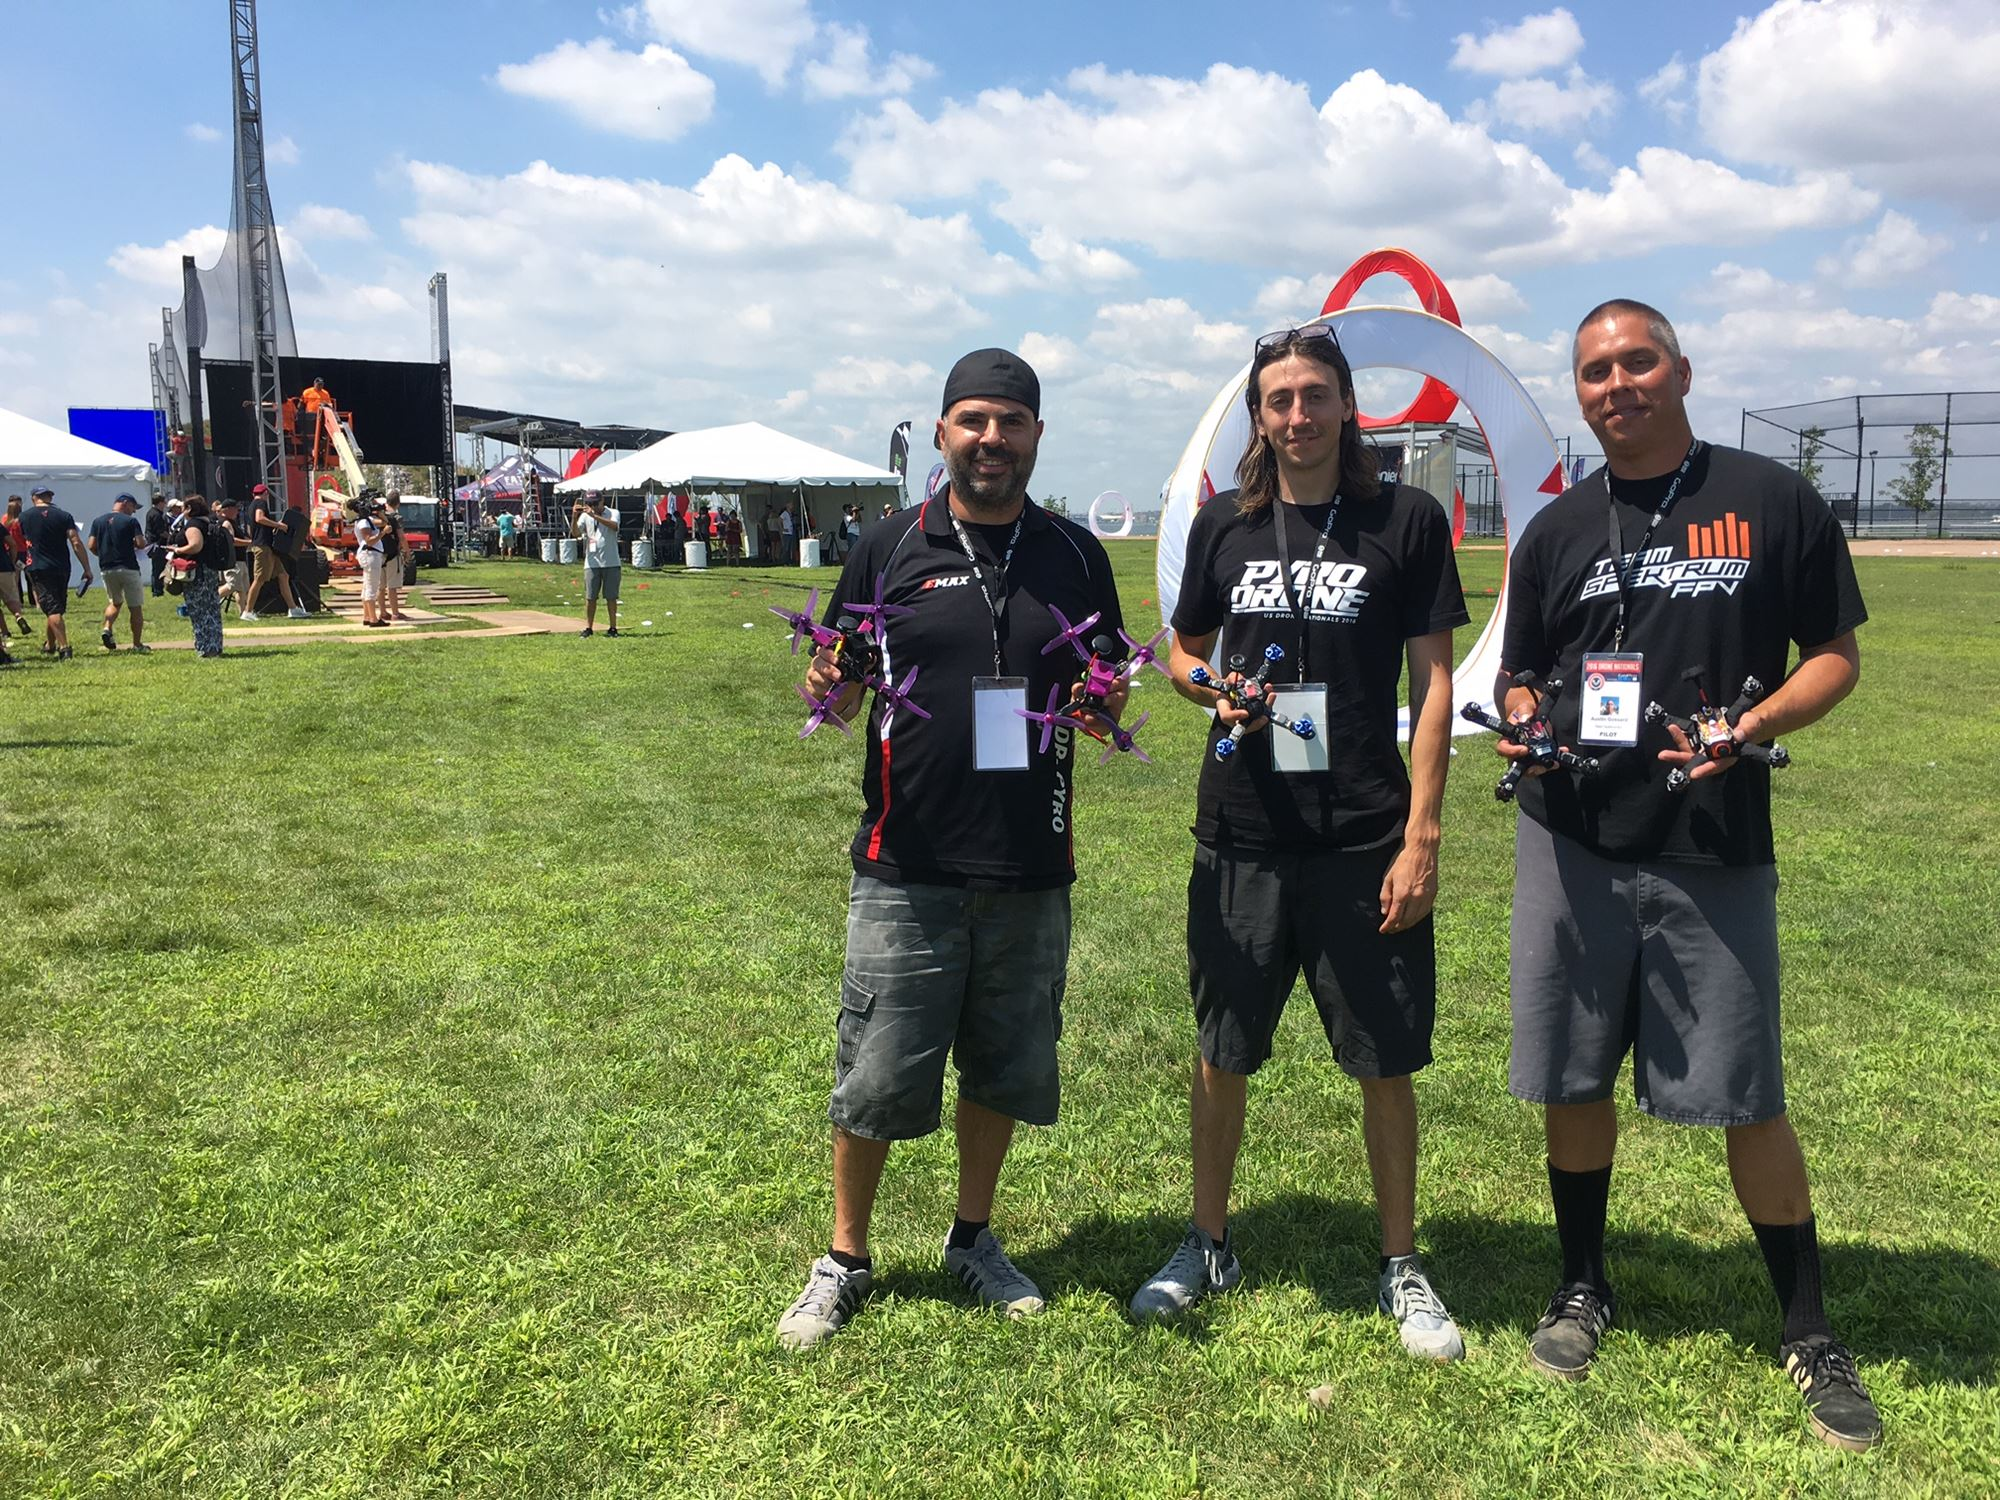 Day 1: US Drone Nationals 2016